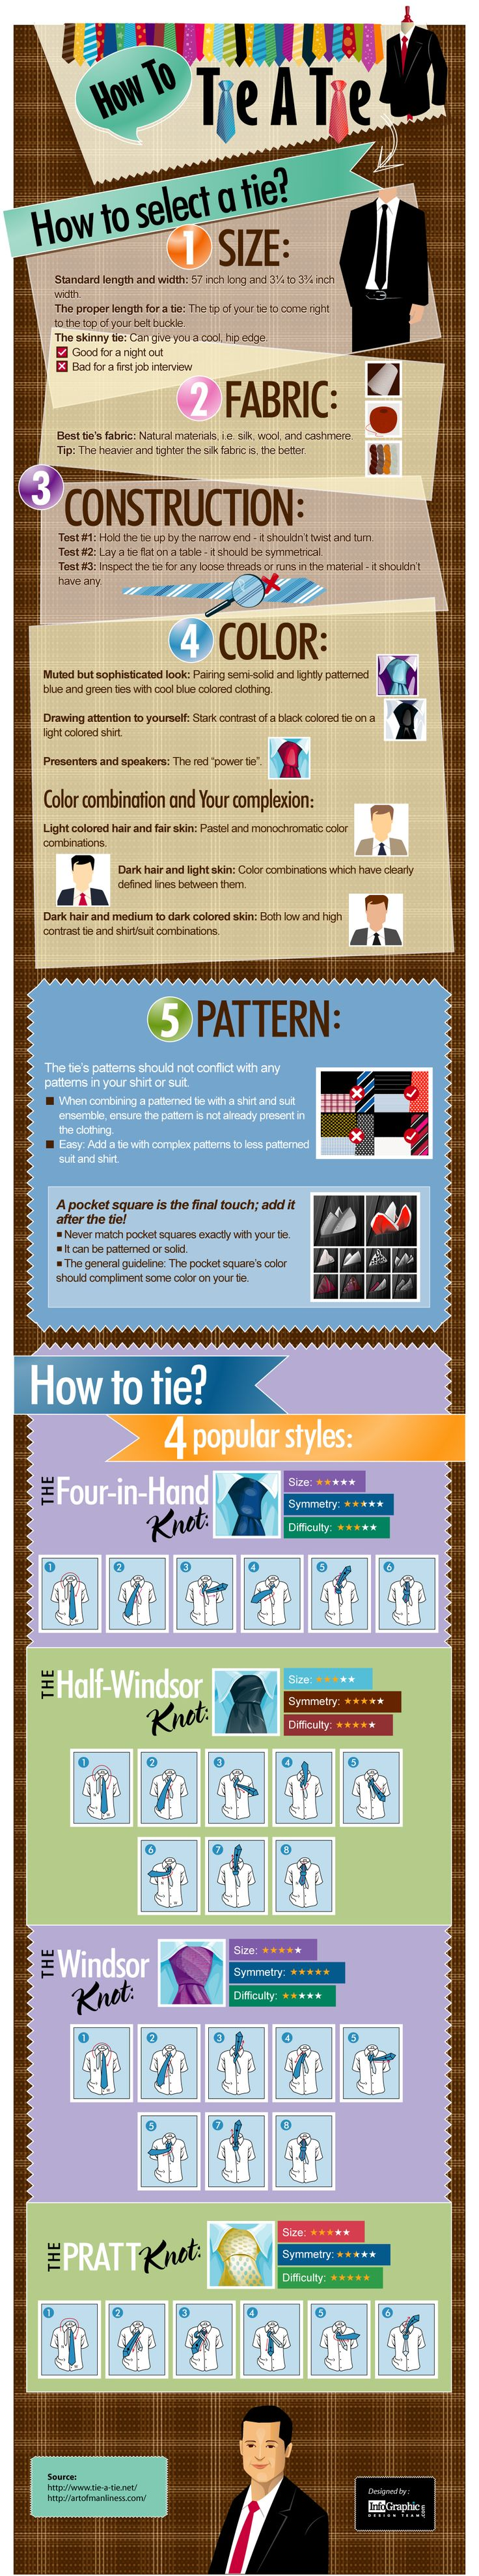 Tie a Tie HOW TO SELECT A TIE? #mensfashion infographic